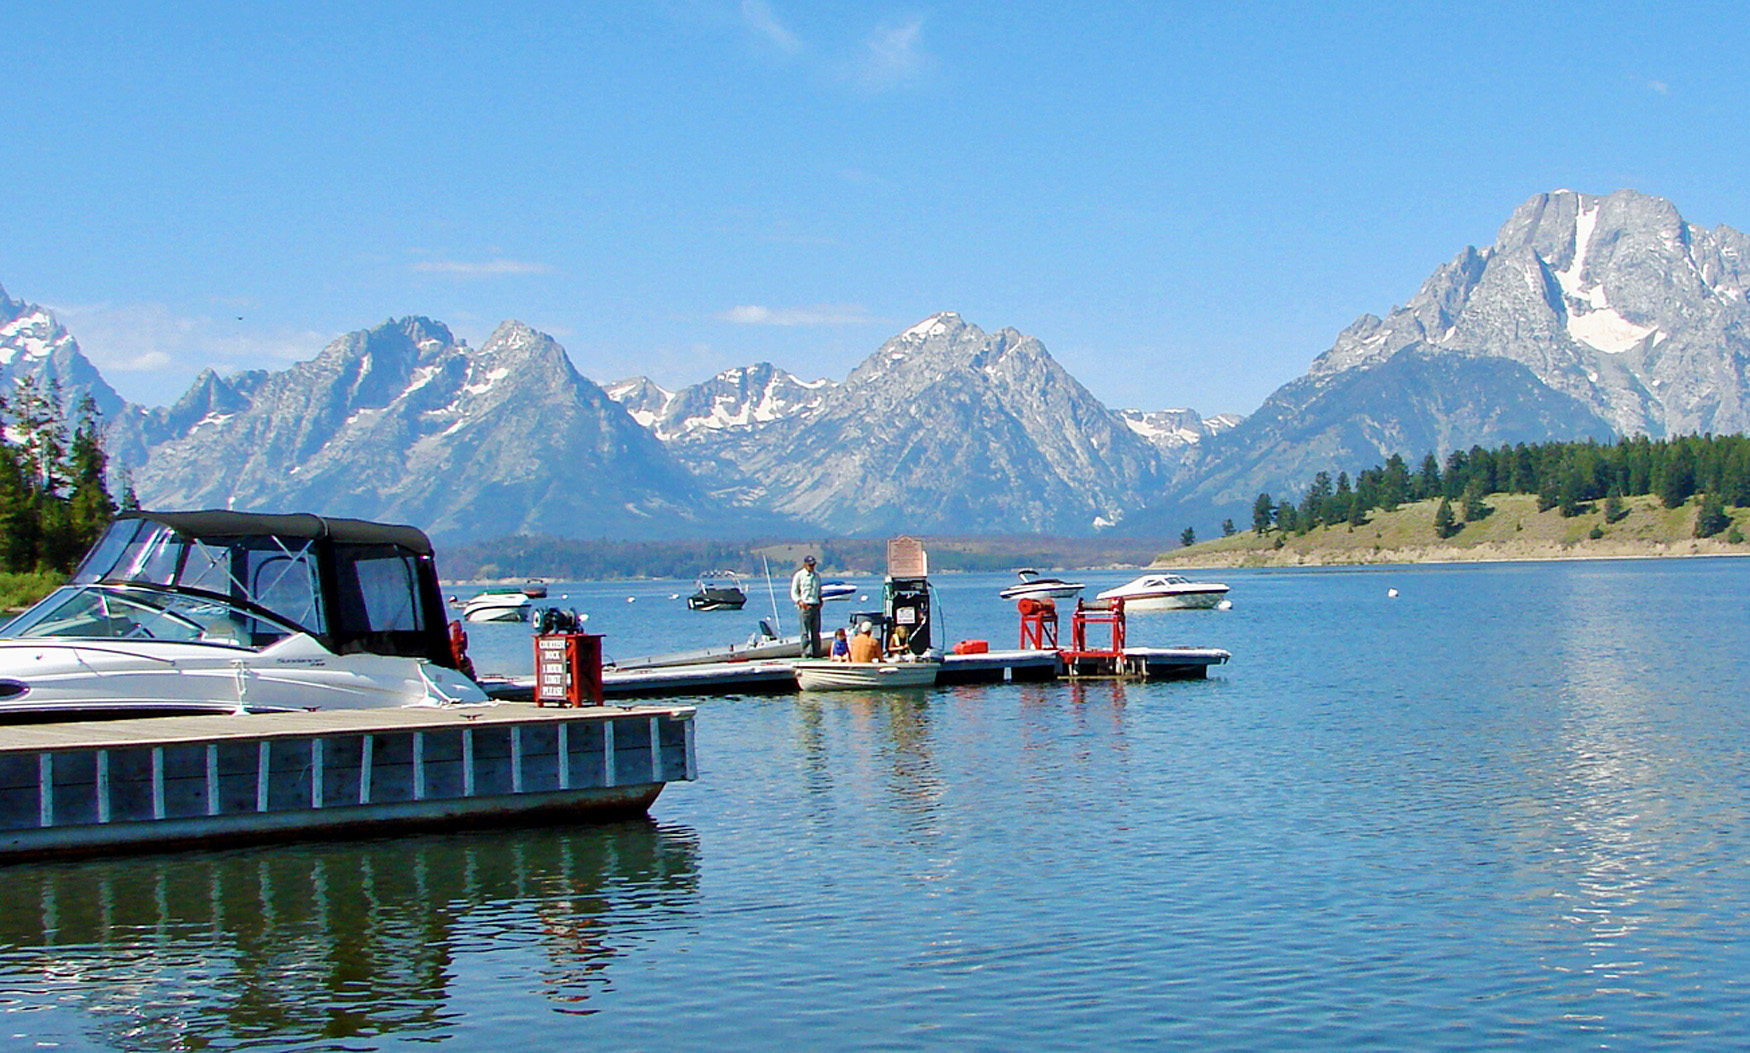 Colter_Bay_Marina,_Jackson_Lake,_Grand_Teton_2011_(32325054111)